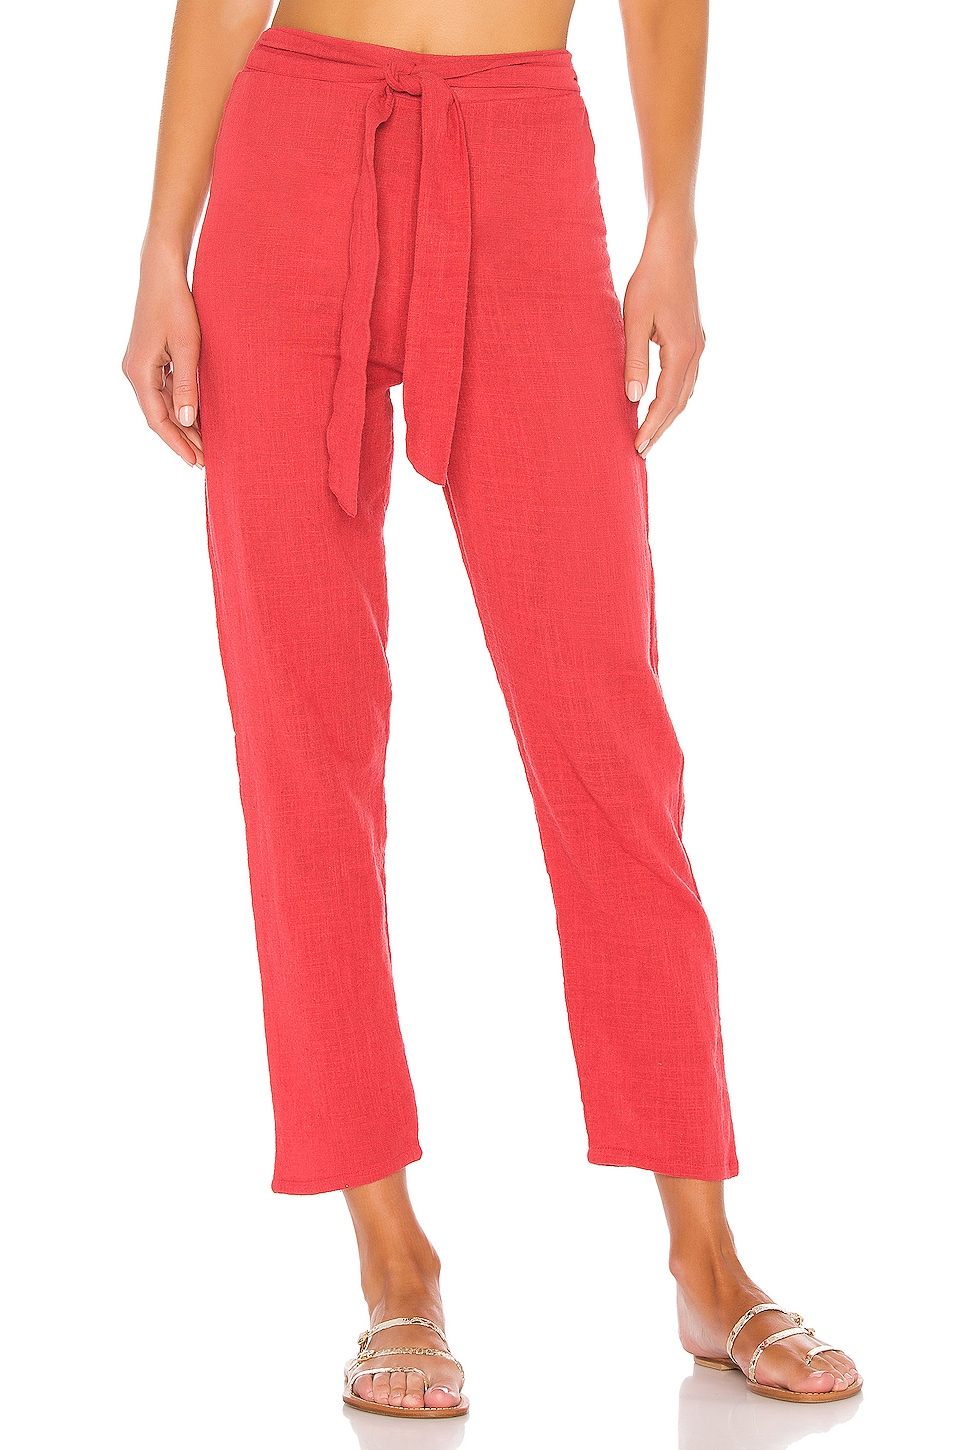 LPA Baby Love Pant in Bright Red